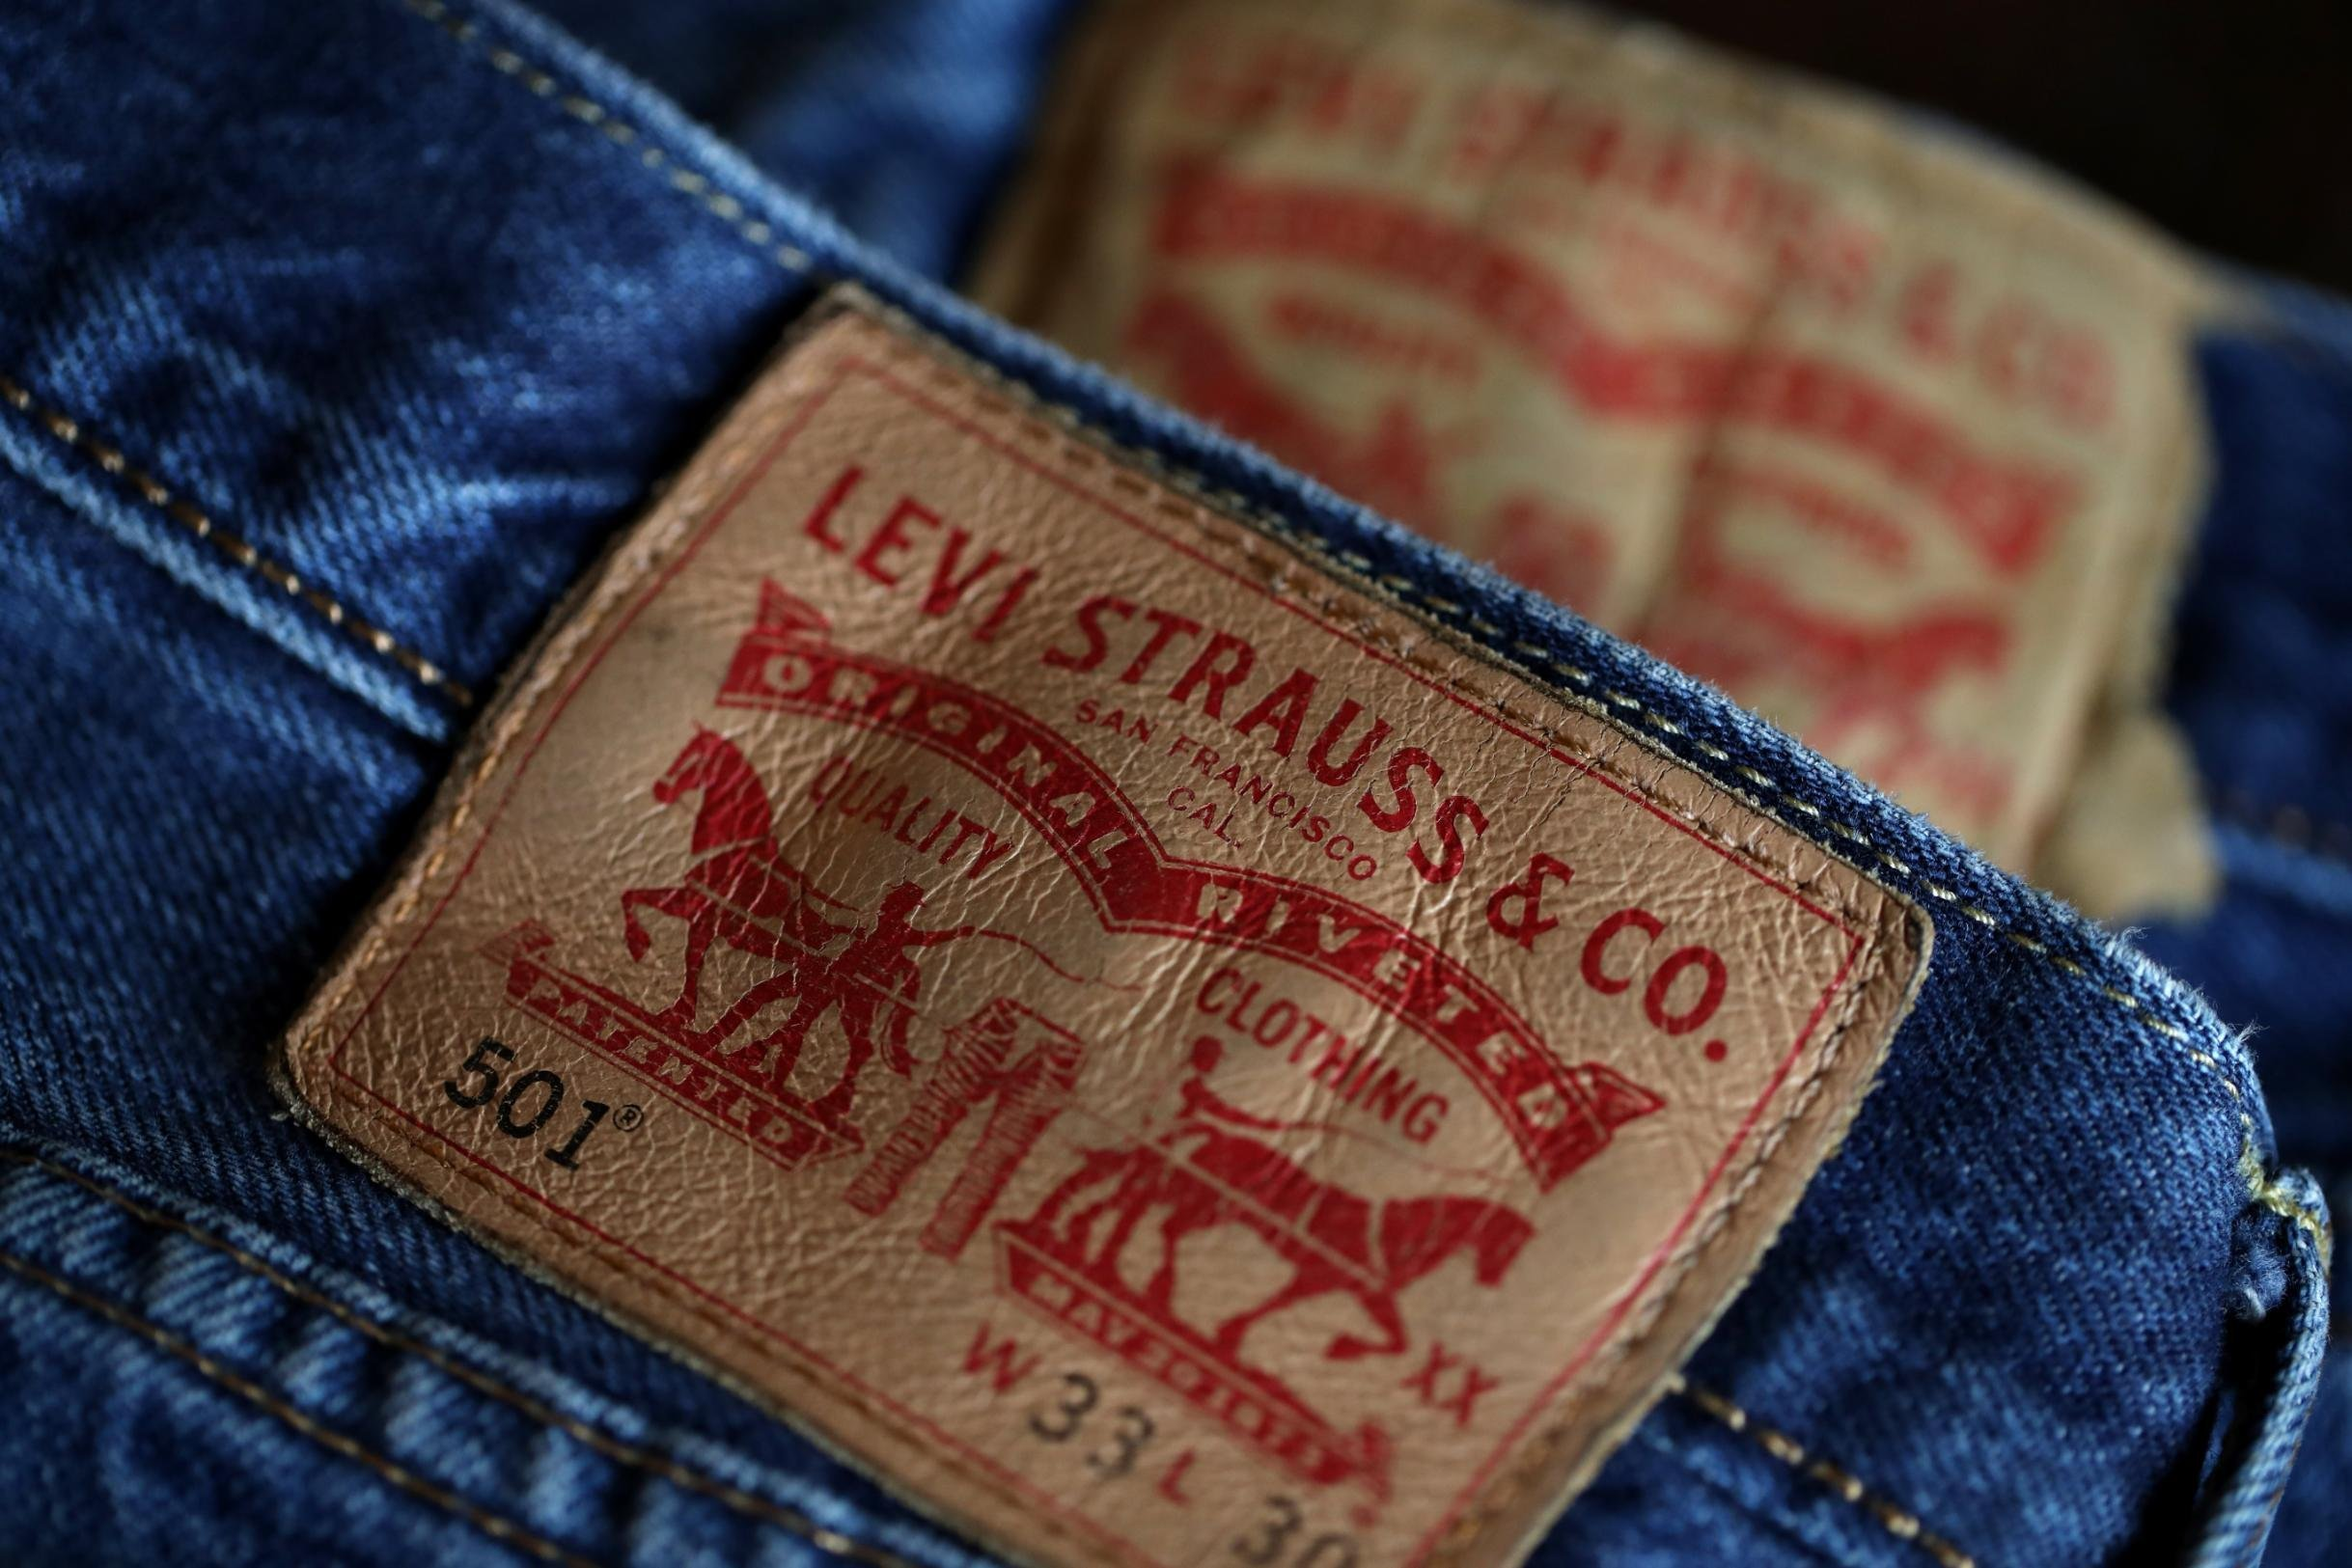 Levi Strauss is suffering from IPO growing pains | WLWI-AM